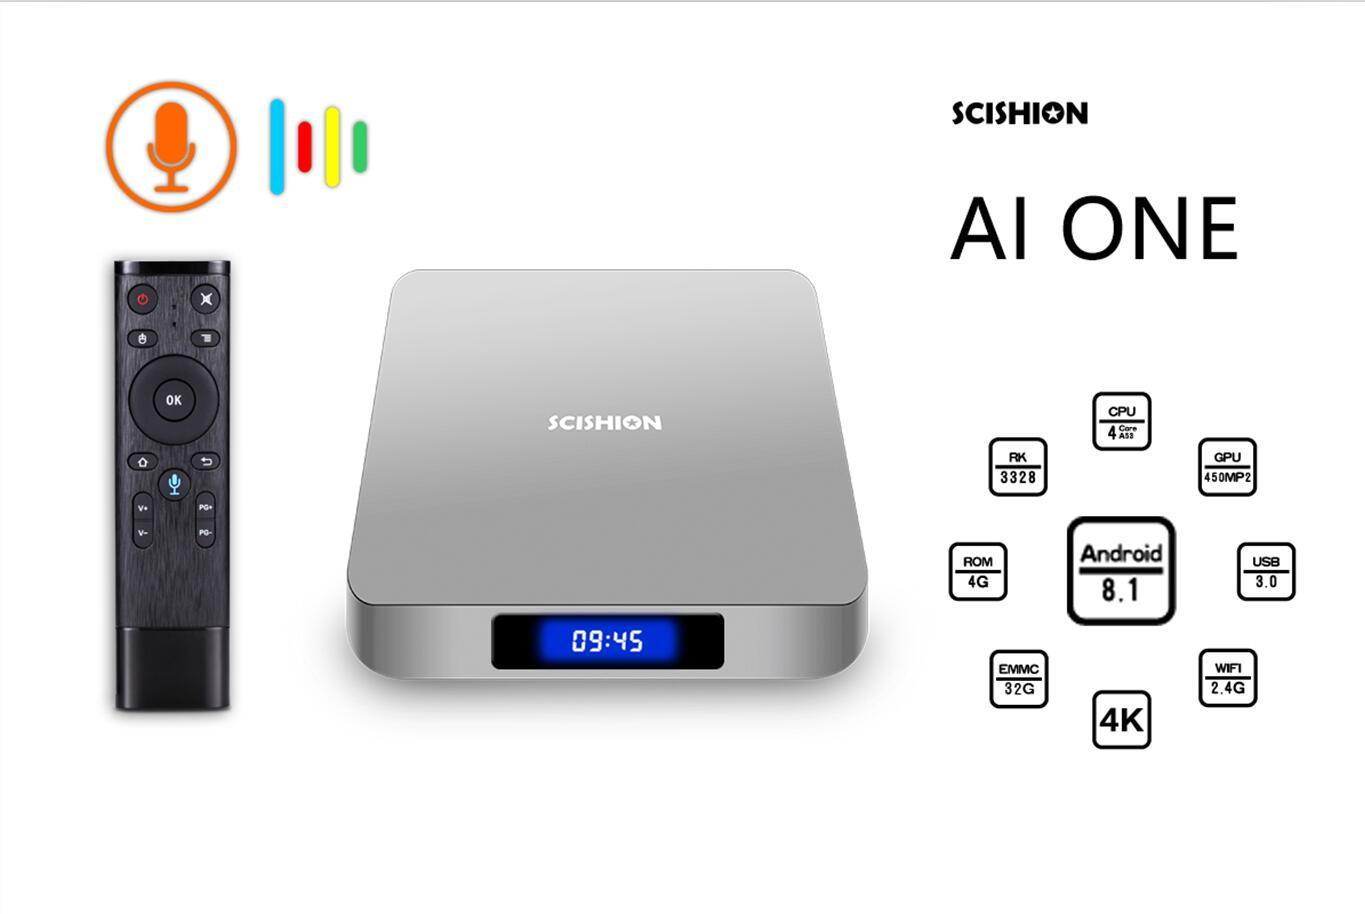 Wholesale AI One Android TV Box 4K Support, Quad-Core CPU, 4GB RAM, Google Play, Kodi TV, Wifi, Android 8.1, 64GB SD Card Support